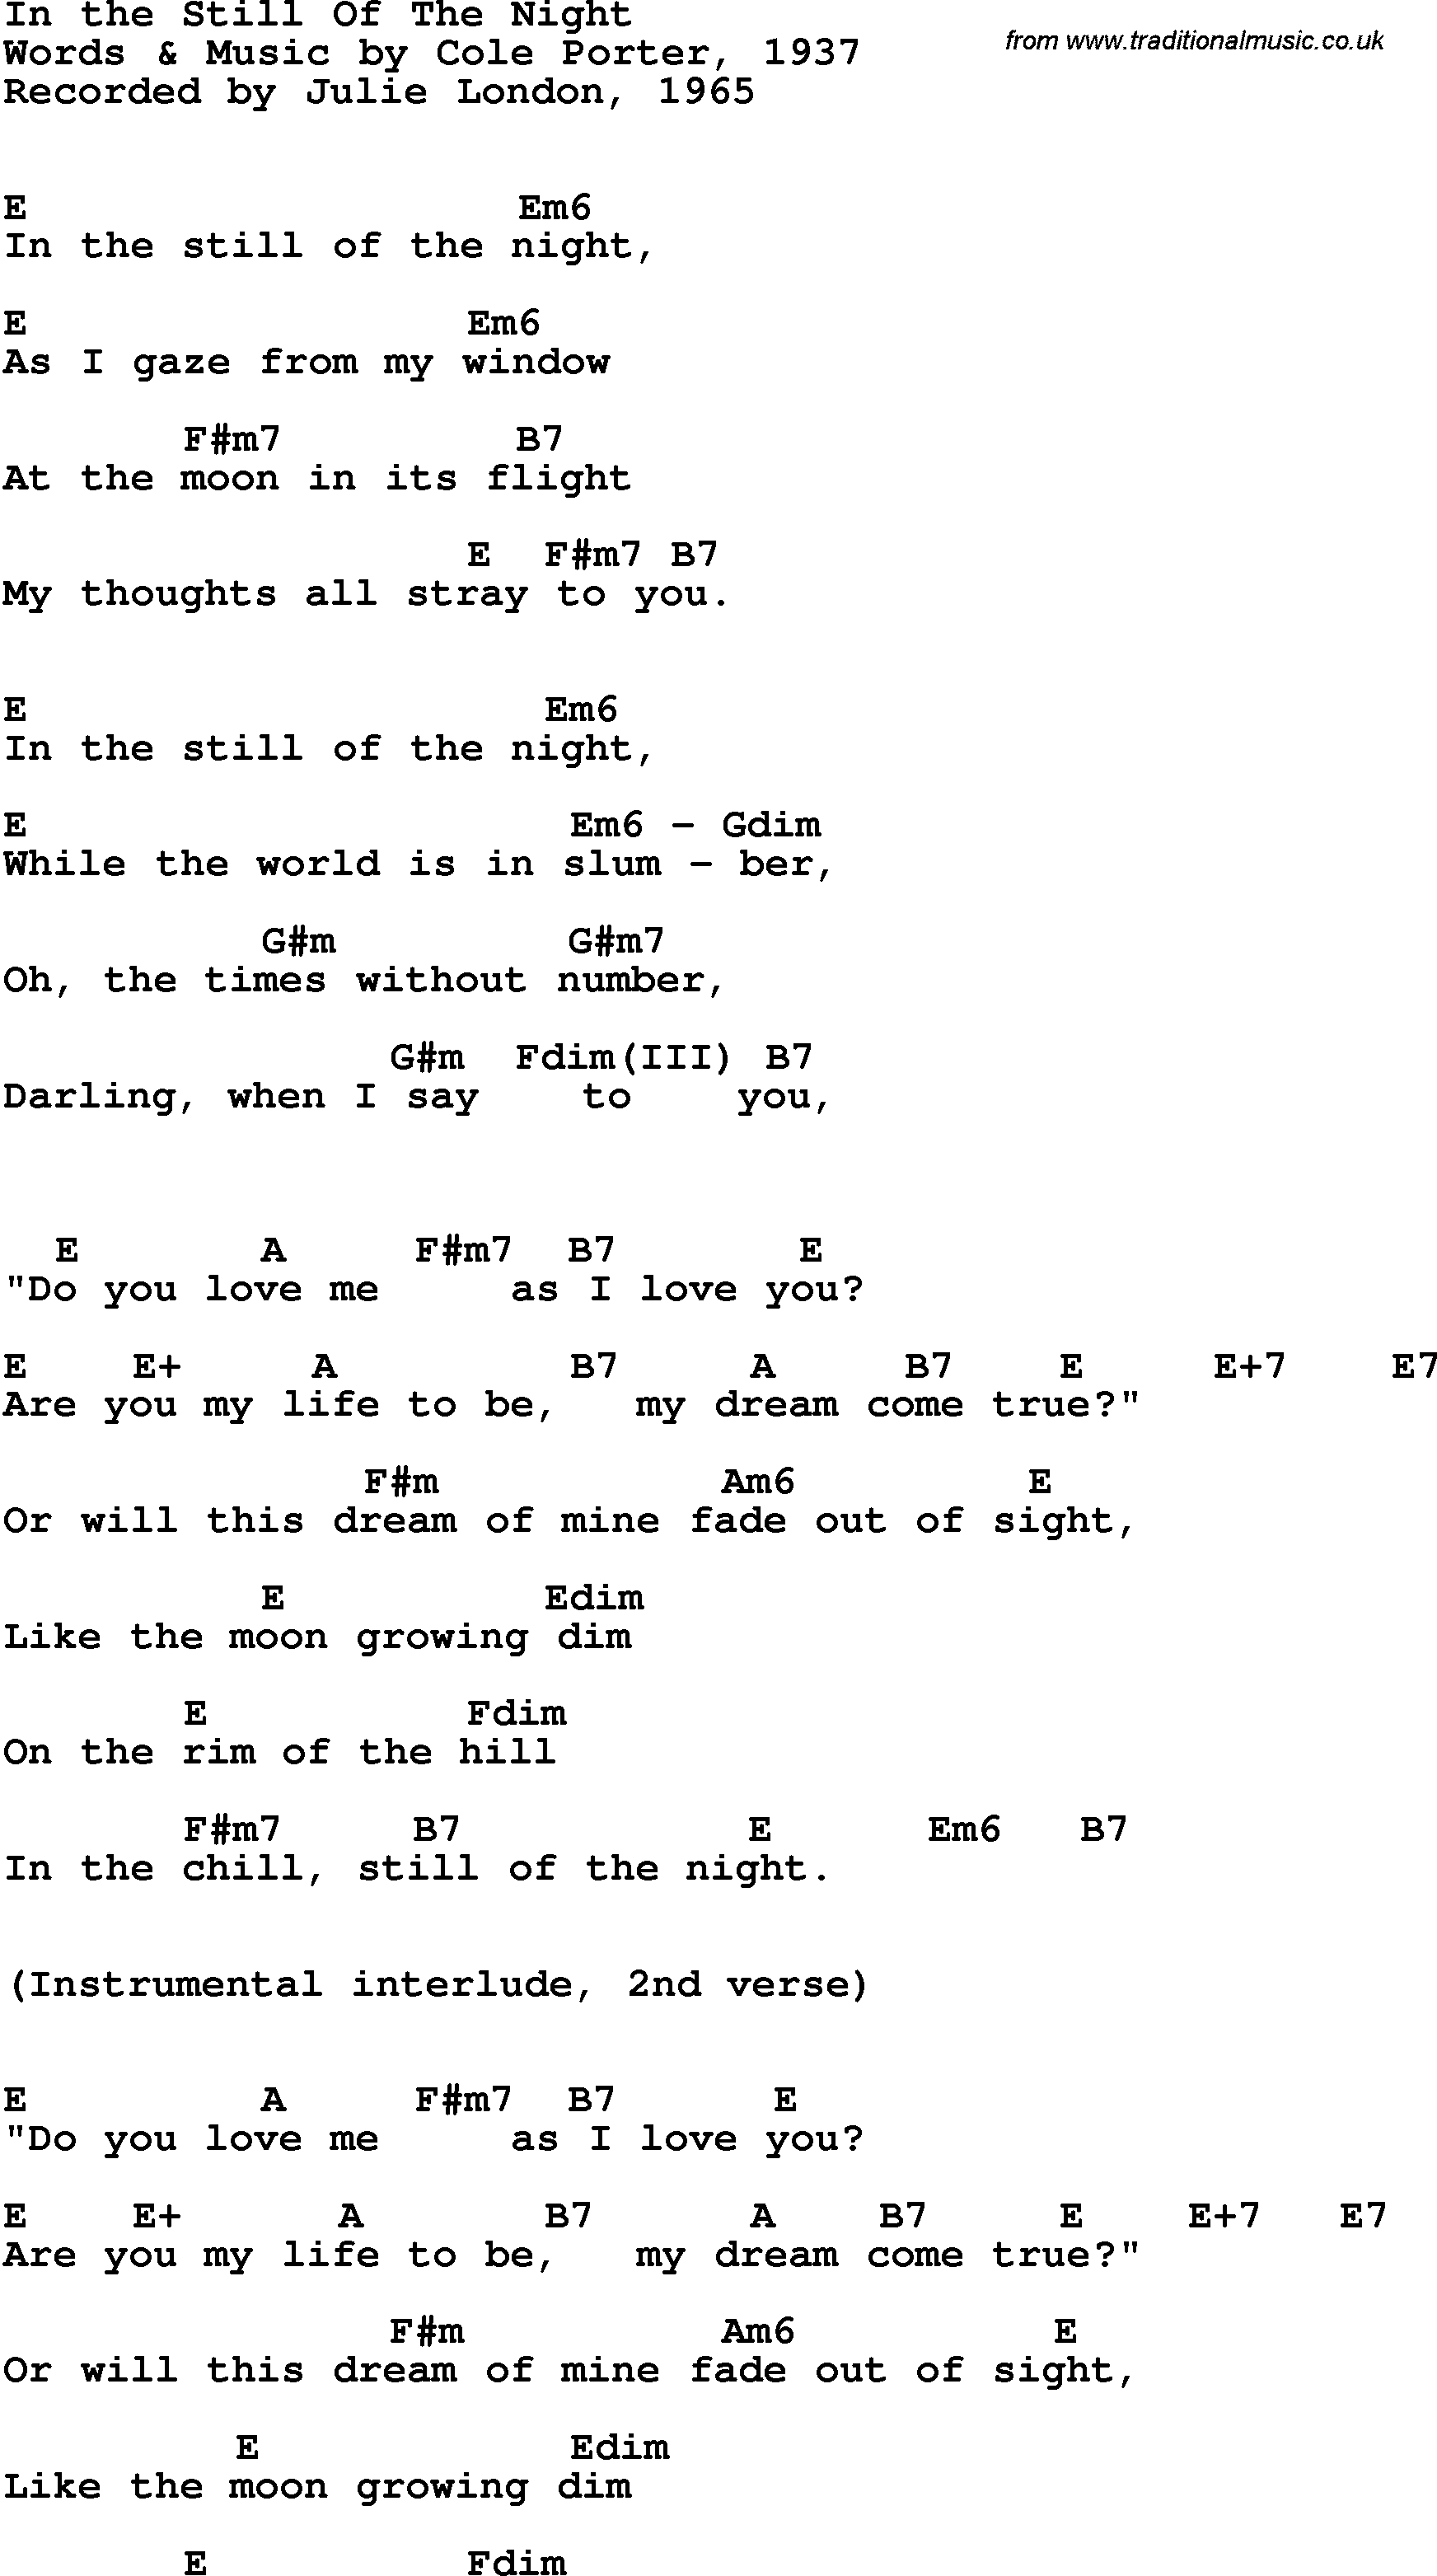 Song lyrics with guitar chords for in the still of the night song lyrics with guitar chords for in the still of the night julie london hexwebz Image collections